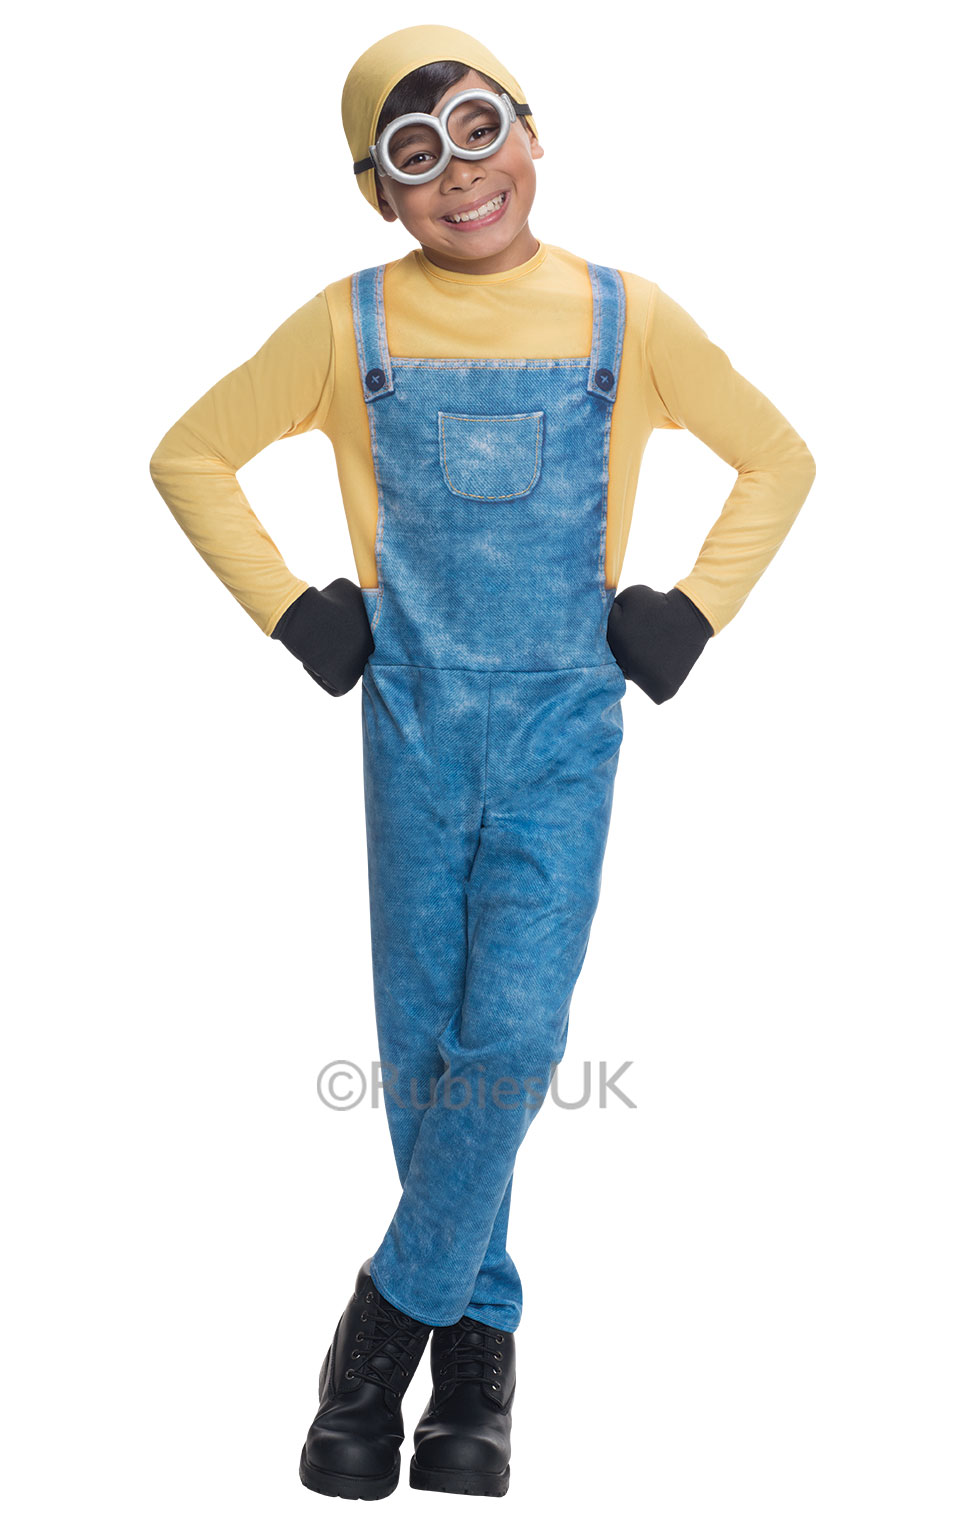 Minion Bob Boys Fancy Dress Despicable Me Kids Childs Movie Film Costume  sc 1 st  Wonderland Party & SALE! Minion Bob Boys Fancy Dress Despicable Me Kids Childs Movie ...